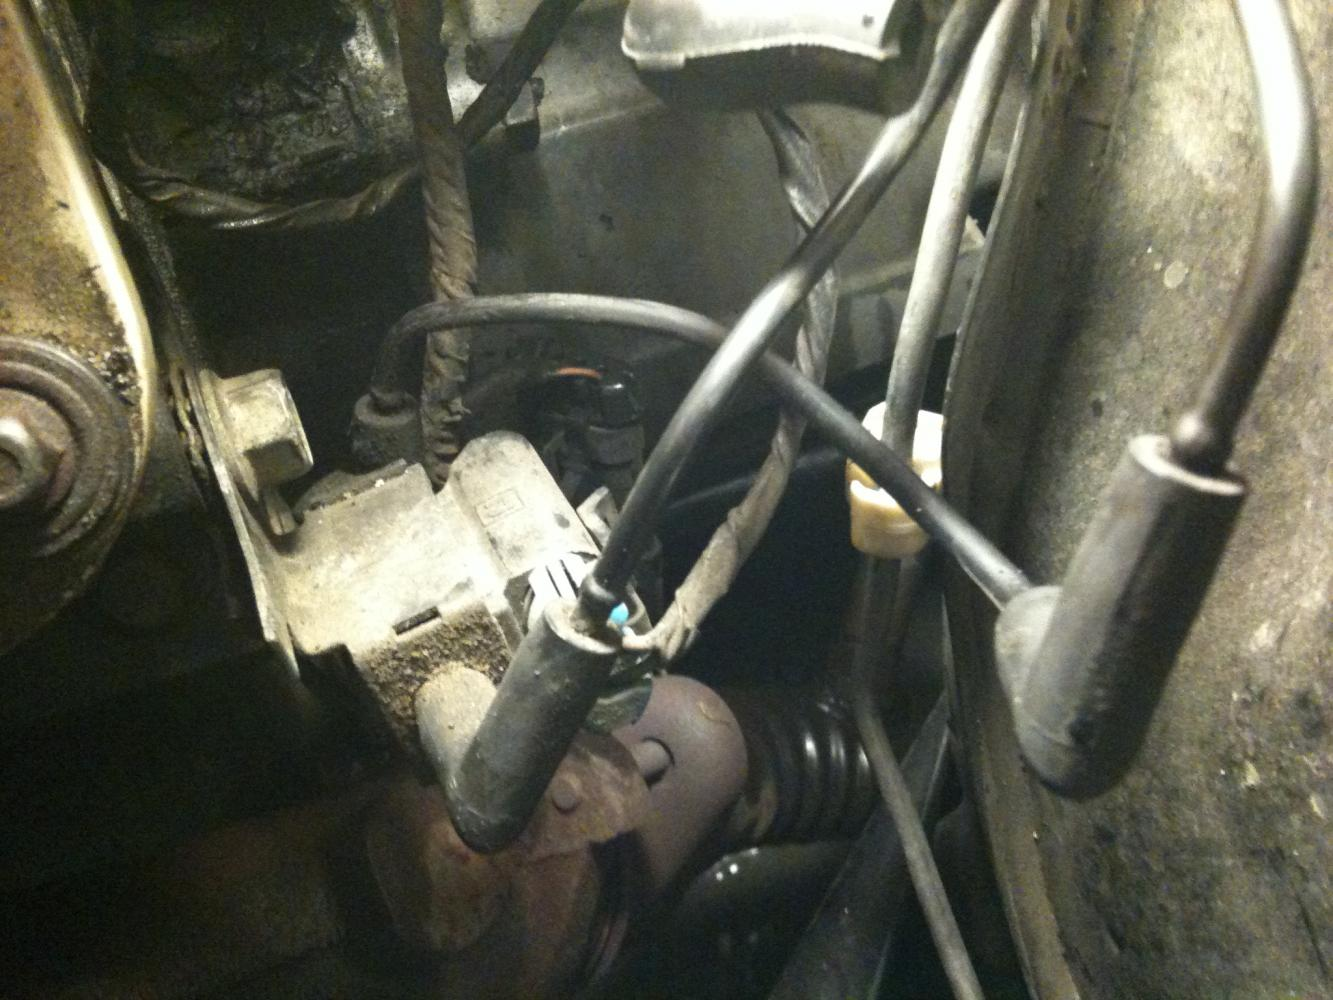 Rough Idle / Misfire at Low Revs | Just Commodores